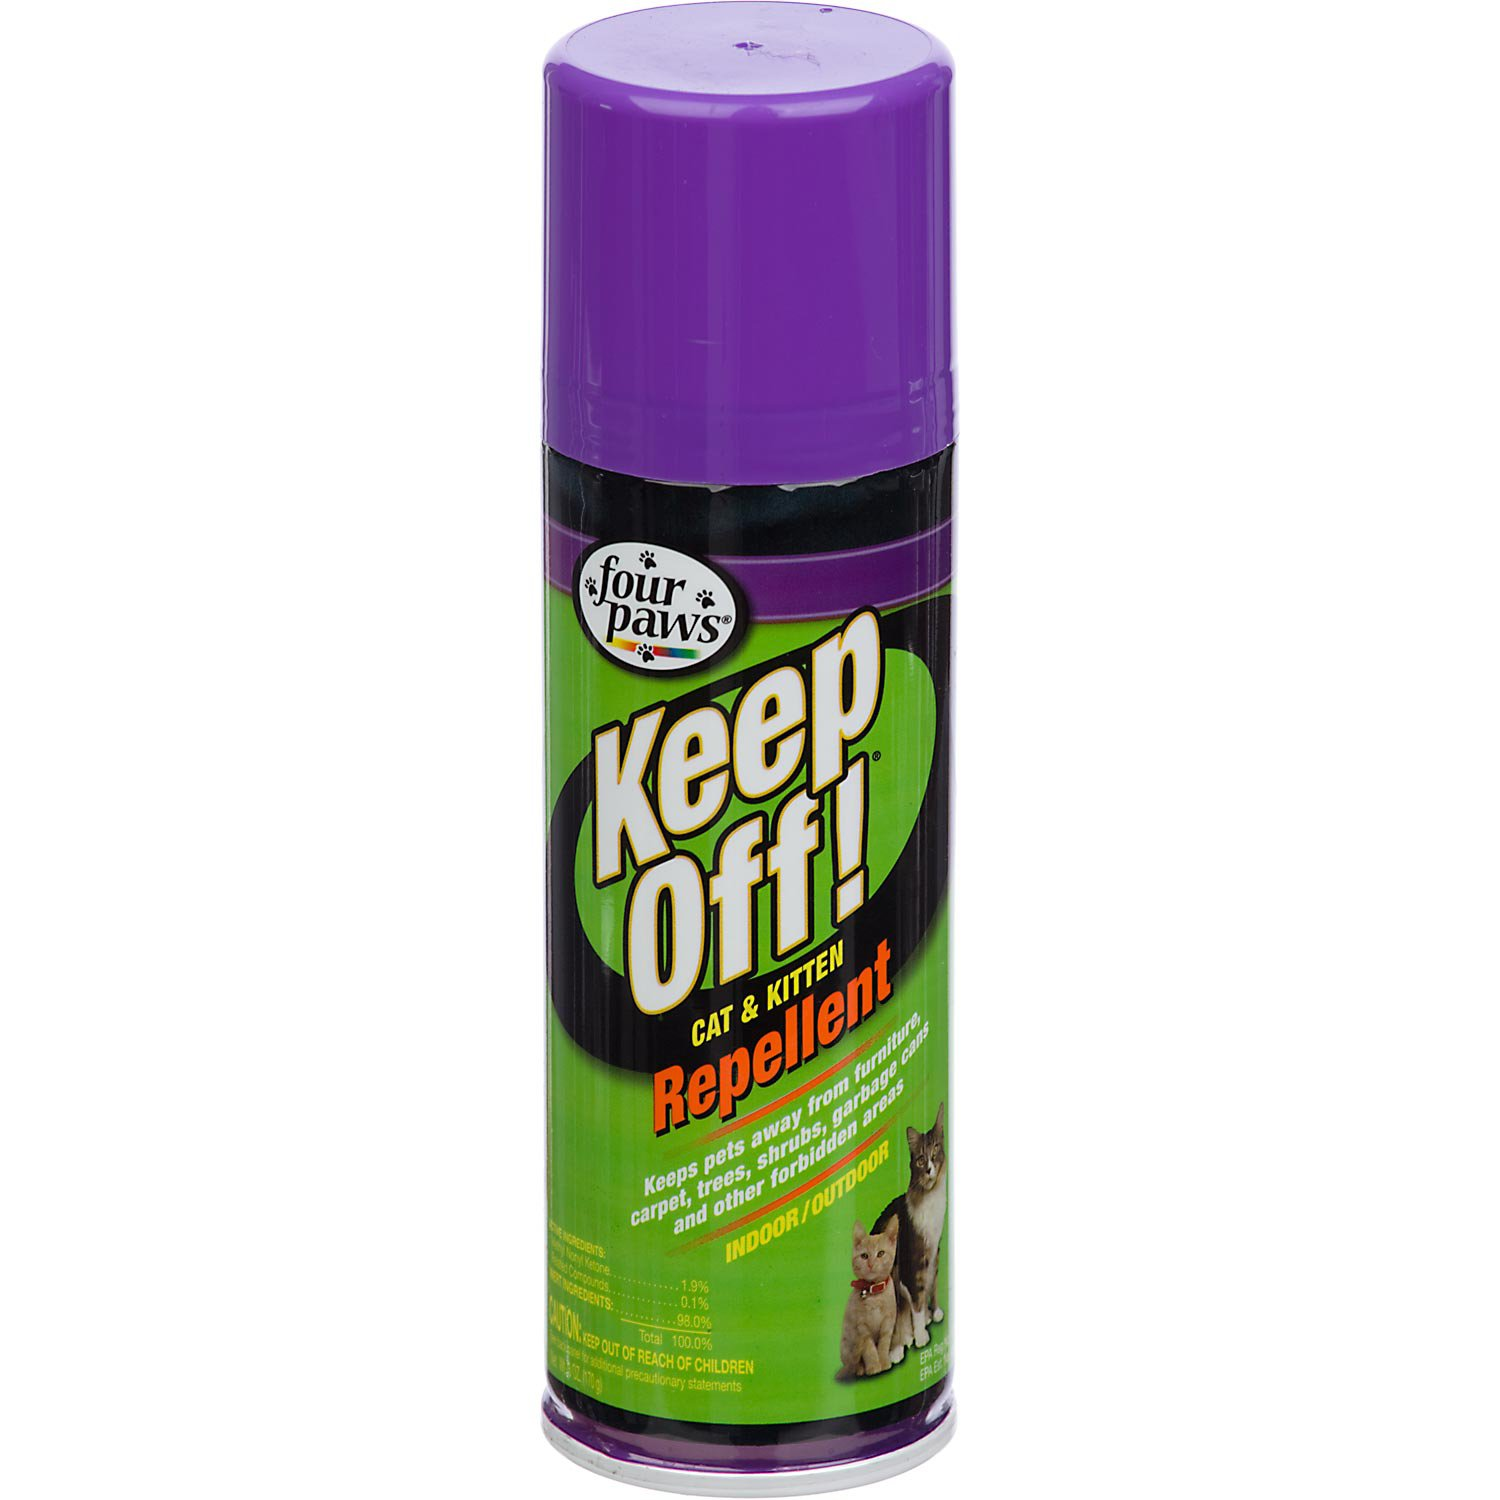 Four Paws Cat And Kitten Repellent | Petco